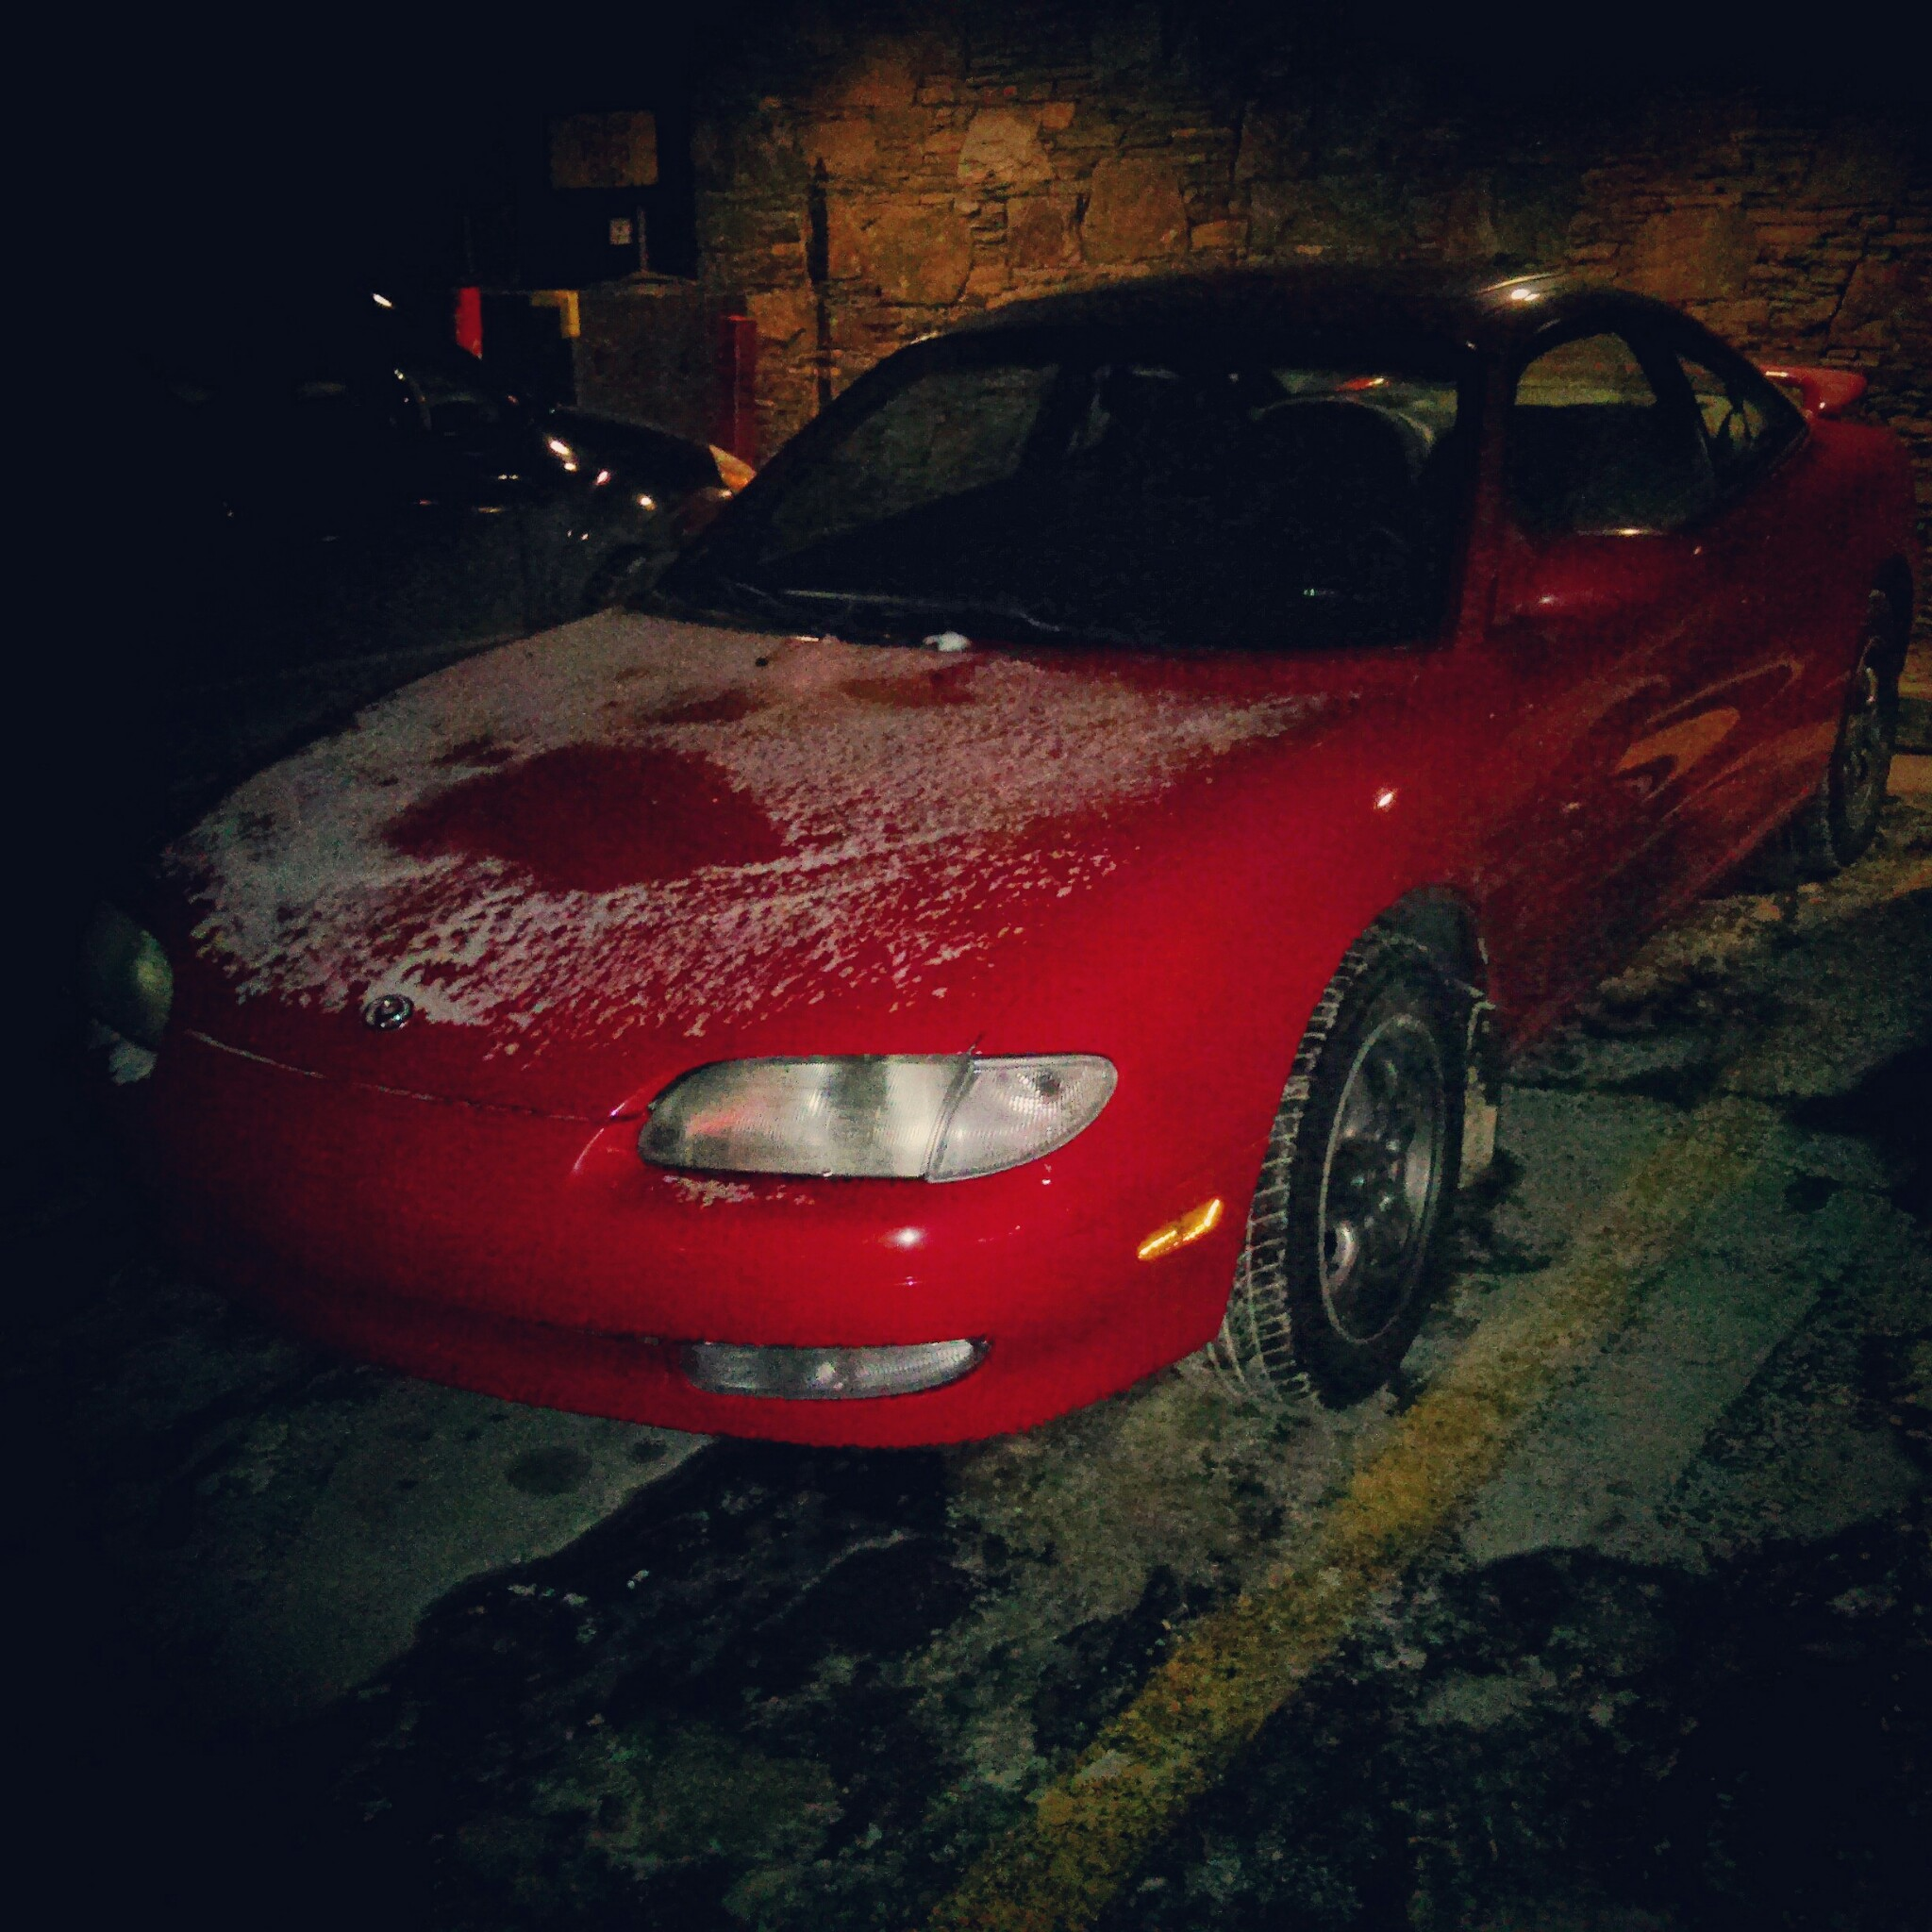 1995 mazda mx6: Red Rocket :) - 19182515